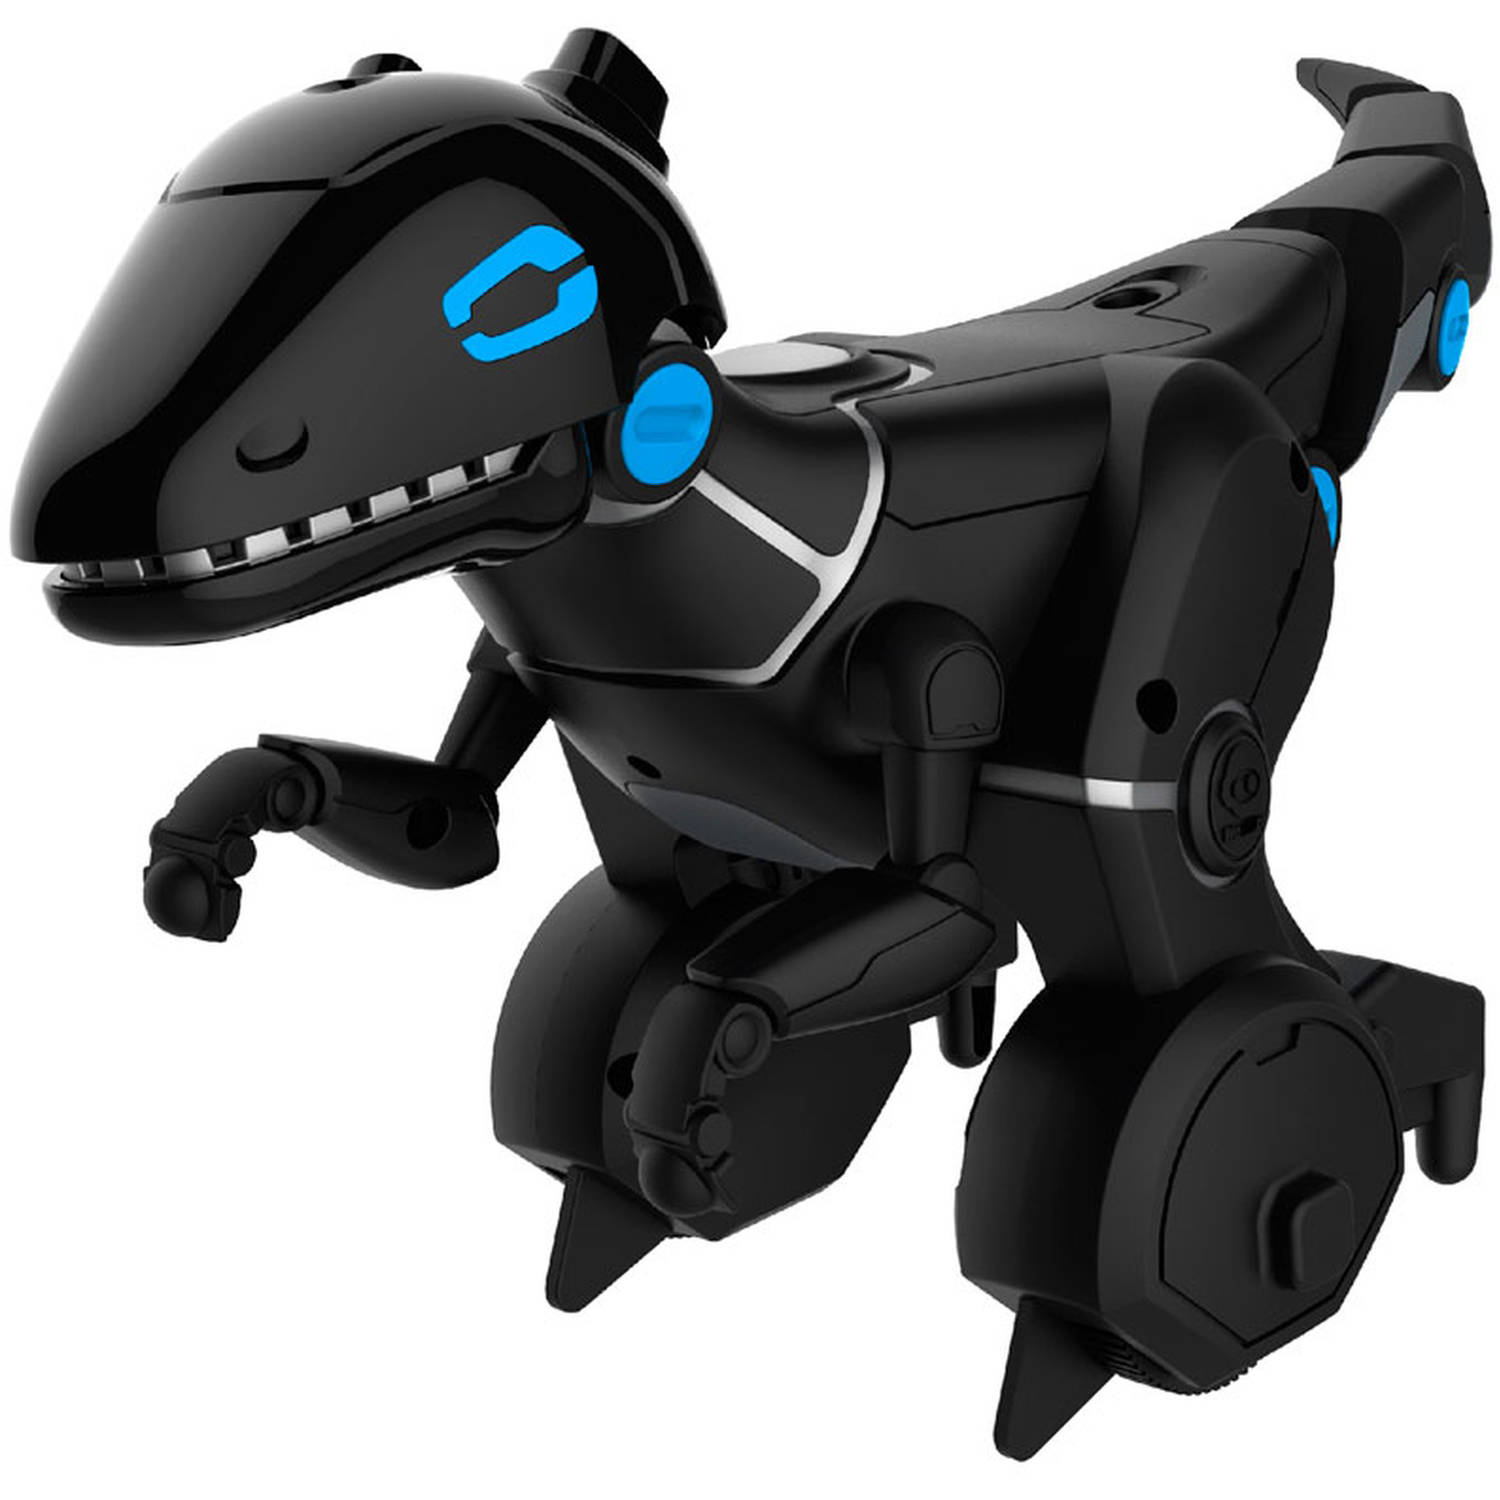 WowWee RC Mini MiPosaur Dinosaur Robot Toy with Remote Control